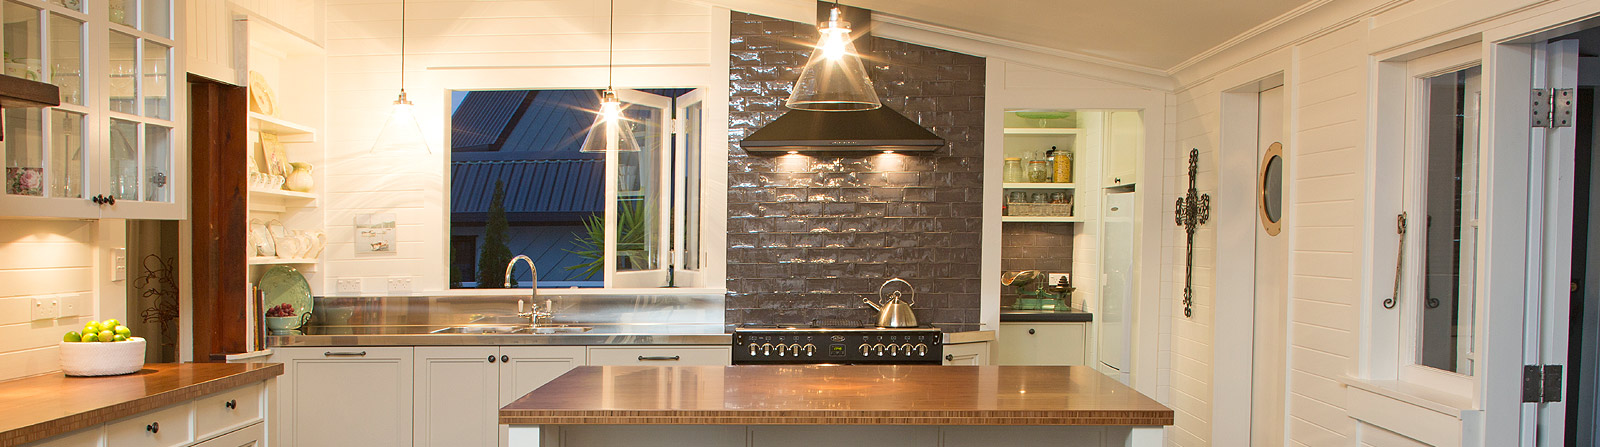 Arkles-Bay-Design-Kitchen-Architecture-portfolio